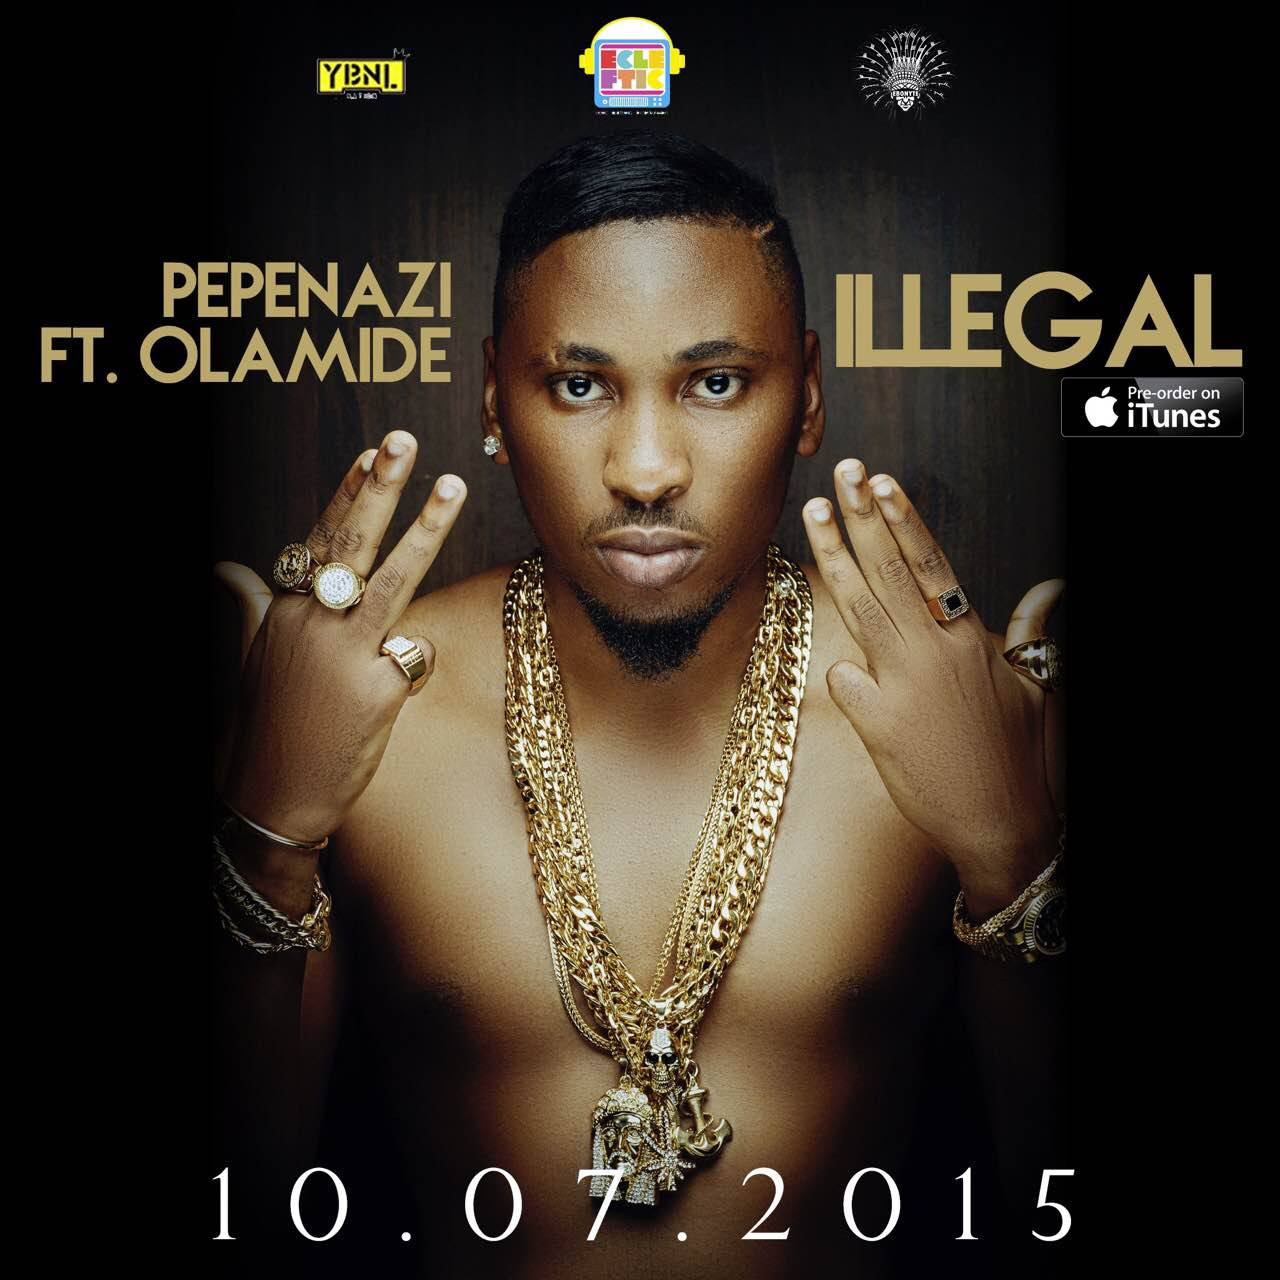 Illegal by Pepenazi ft. Olamide